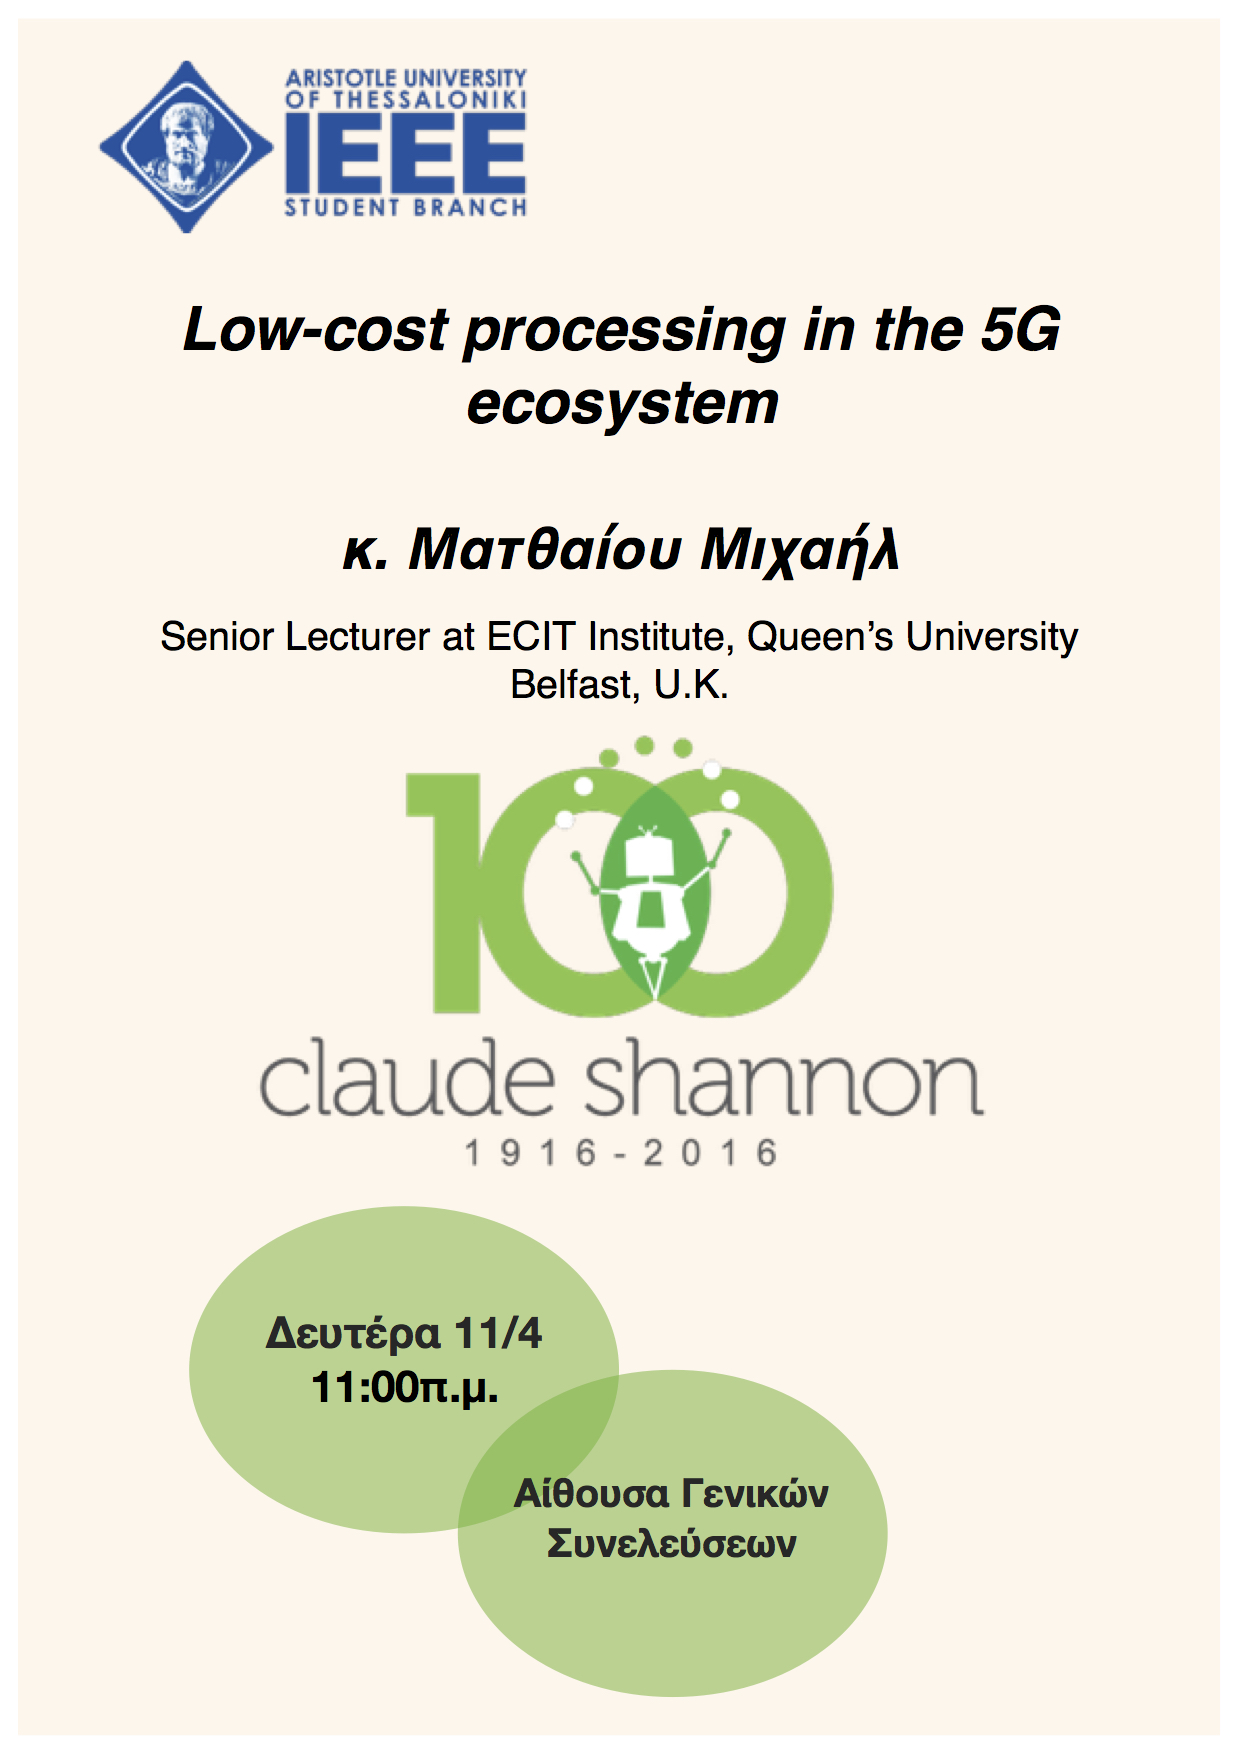 Low-cost processing in the 5G ecosystem